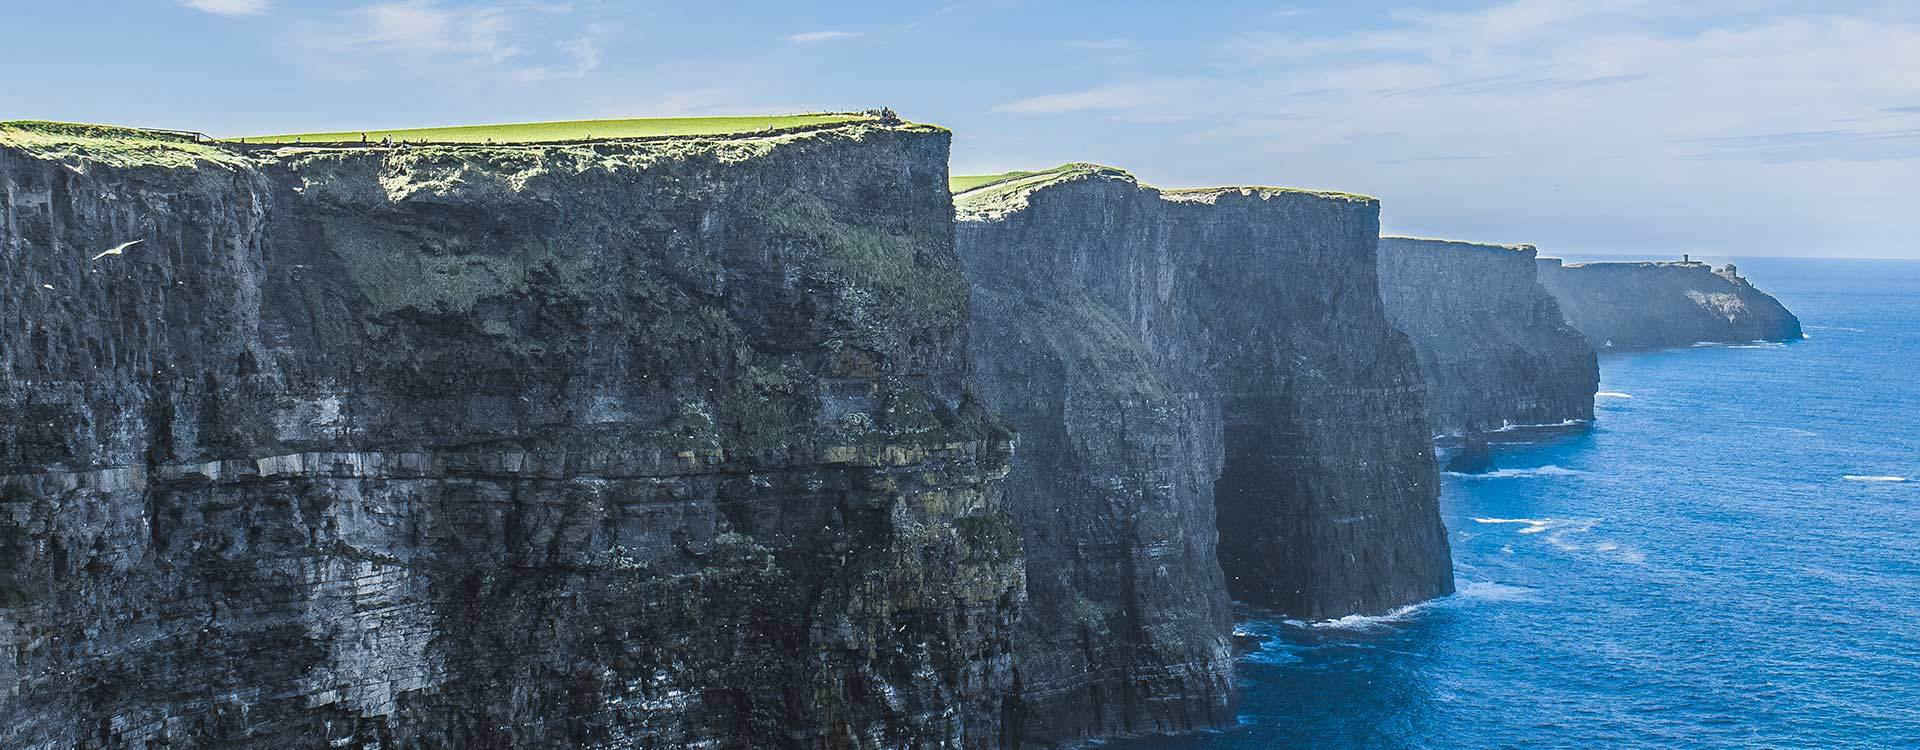 Cliffs of Moher Day Tour from Limerick